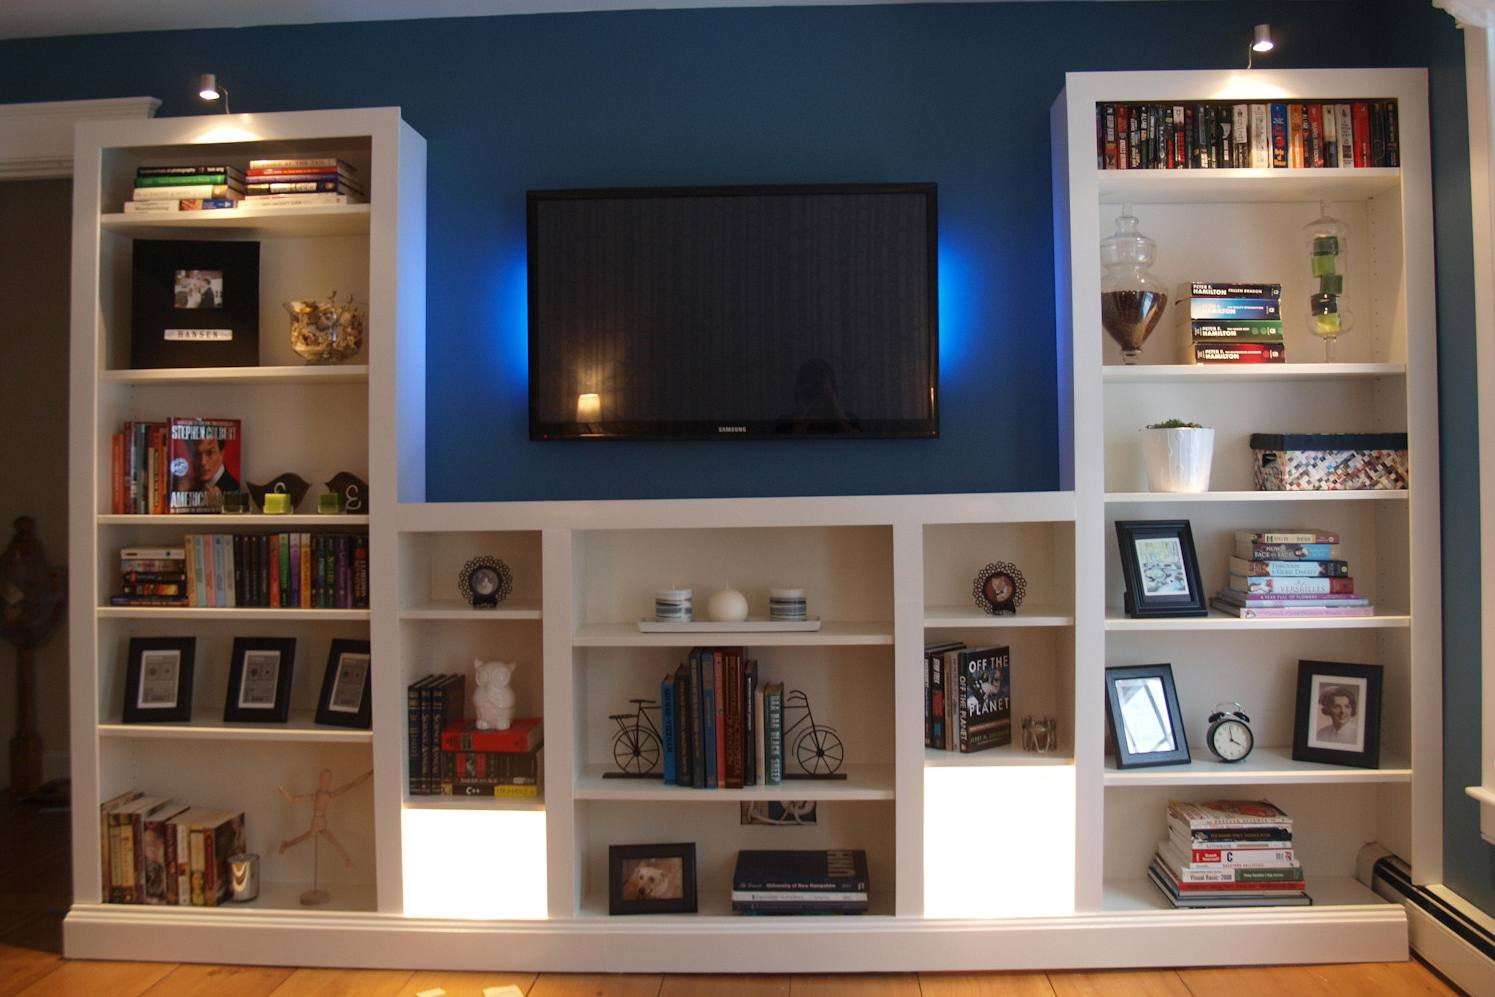 ikea hacks: the best 23 billy bookcase built-ins ever